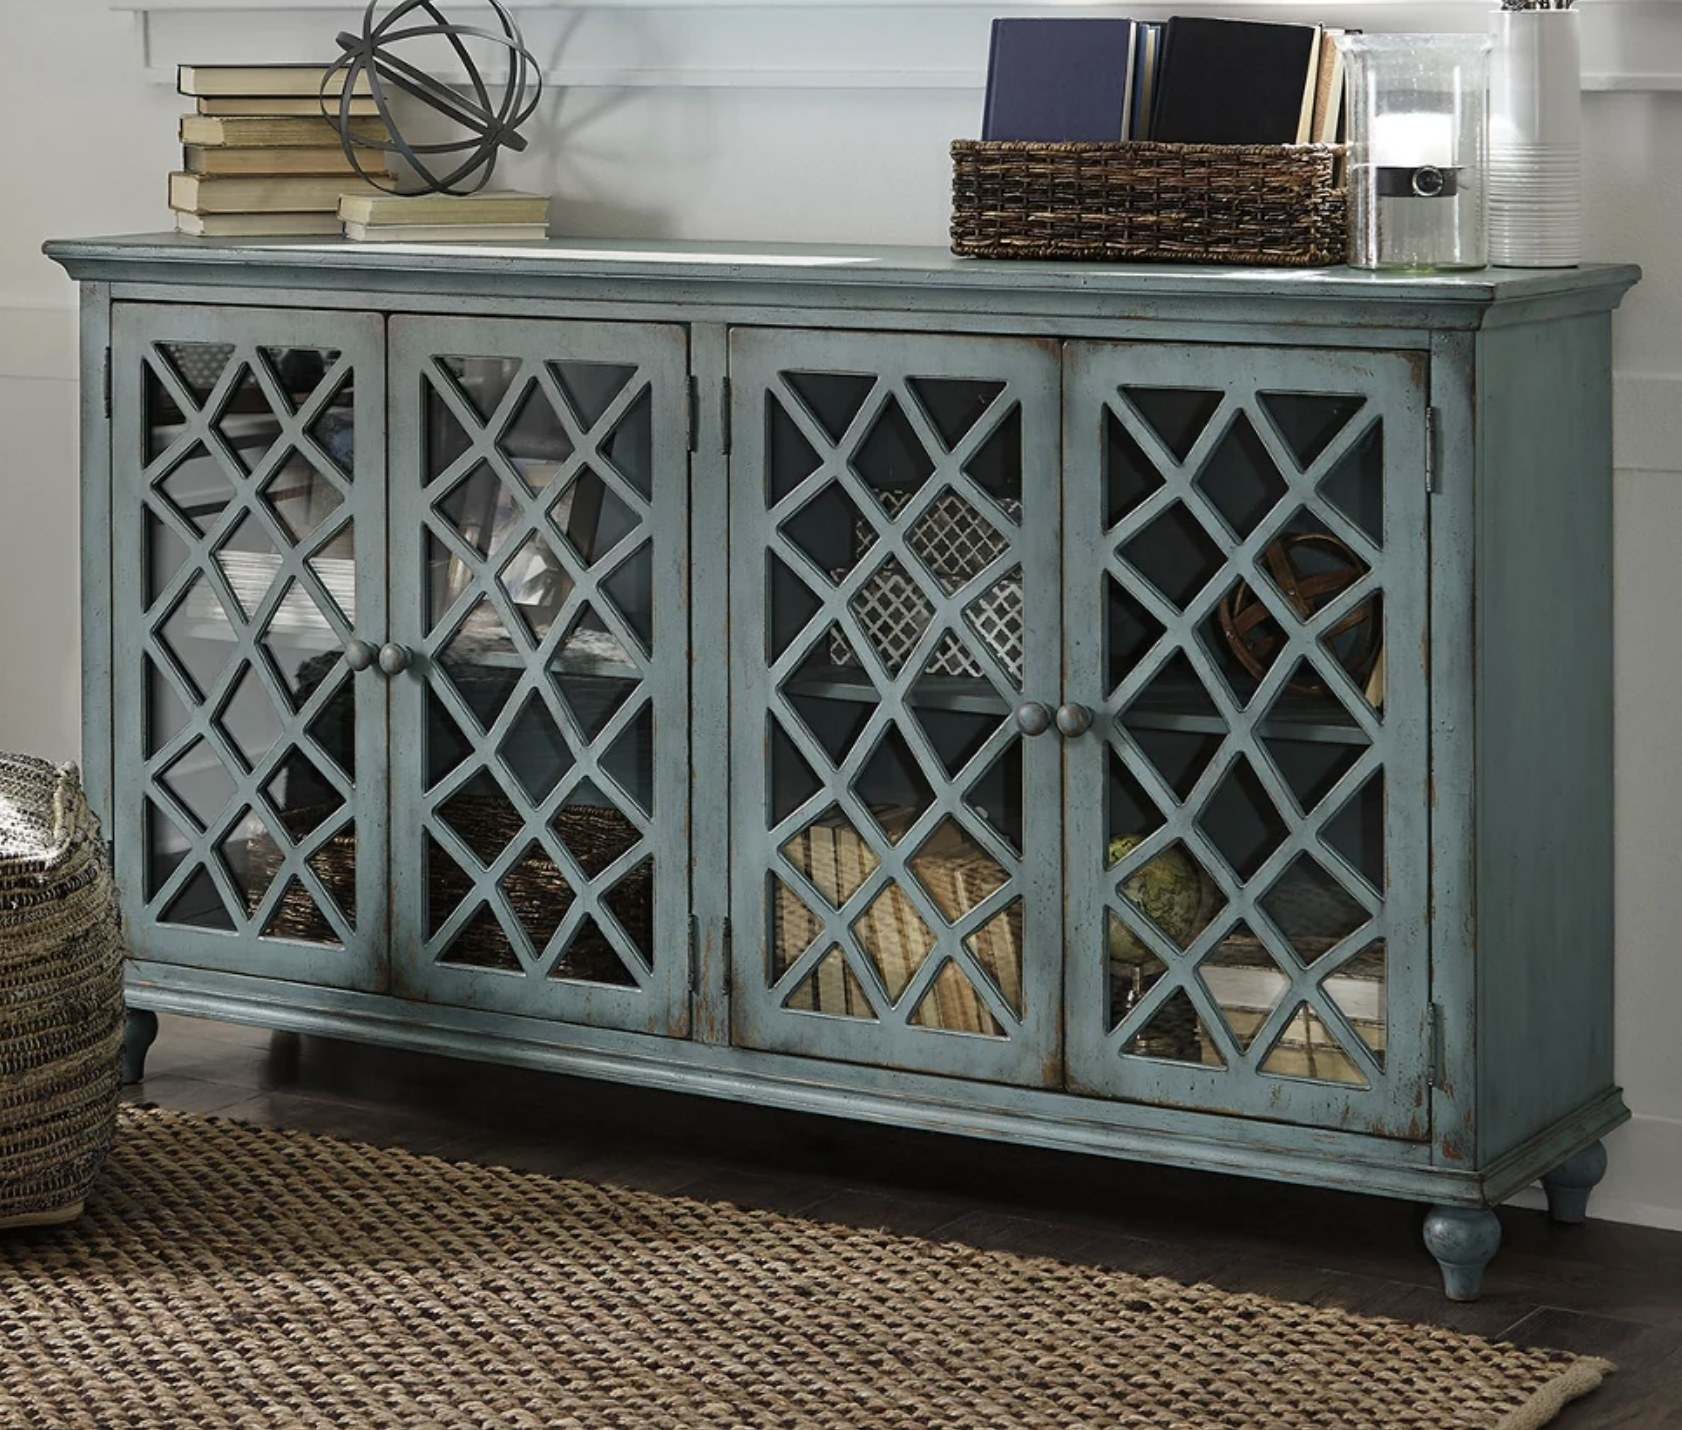 A weathered blue wood cabinet